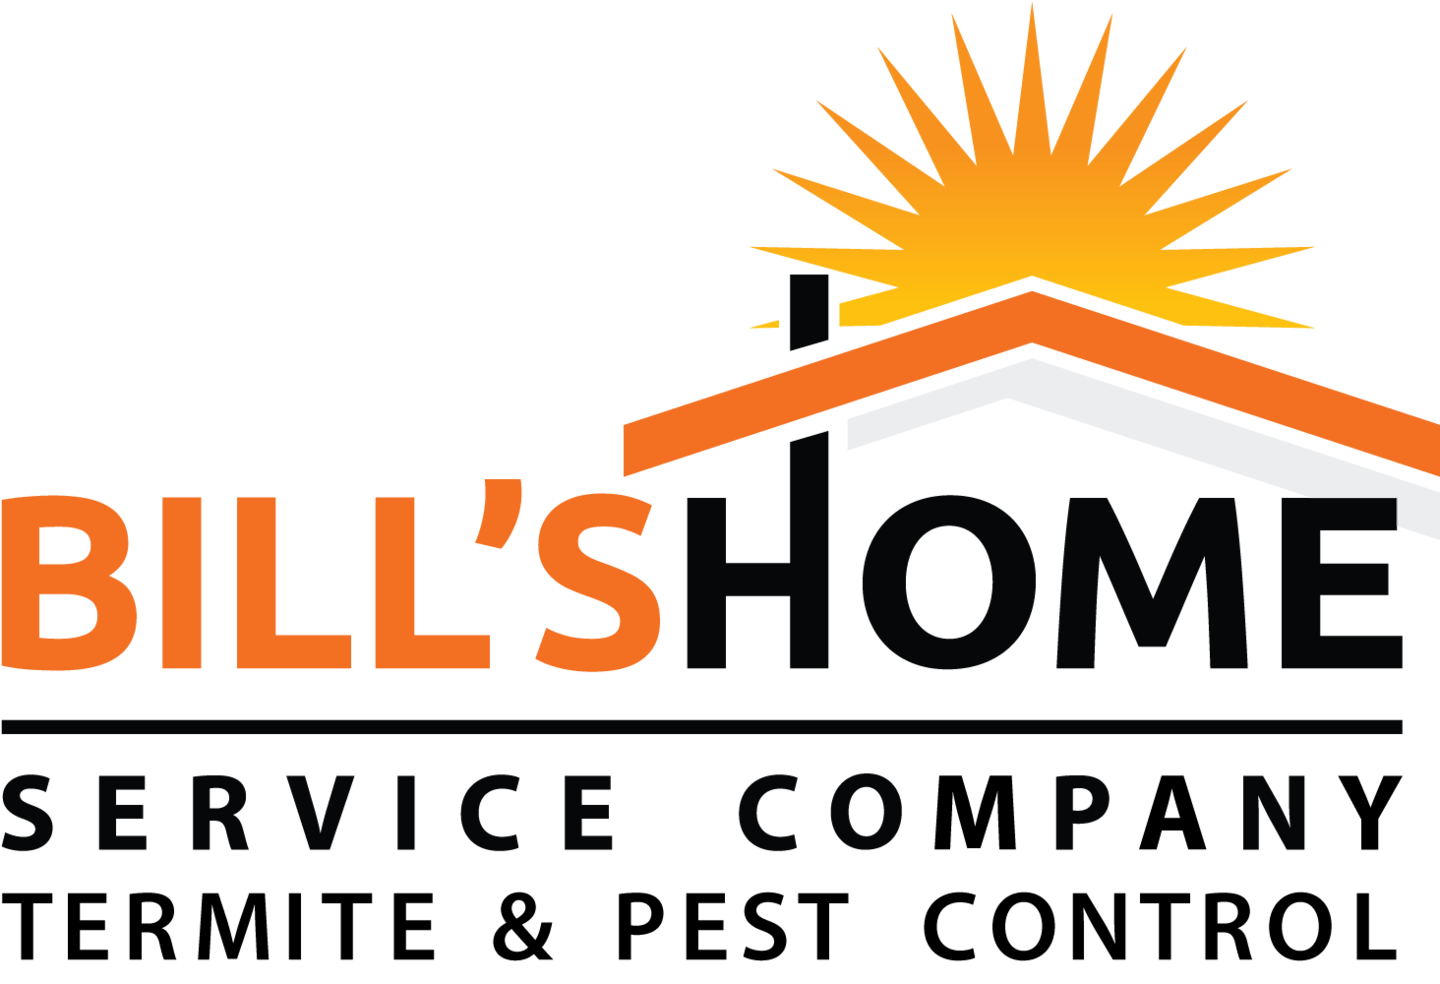 Bill's Home Service Co